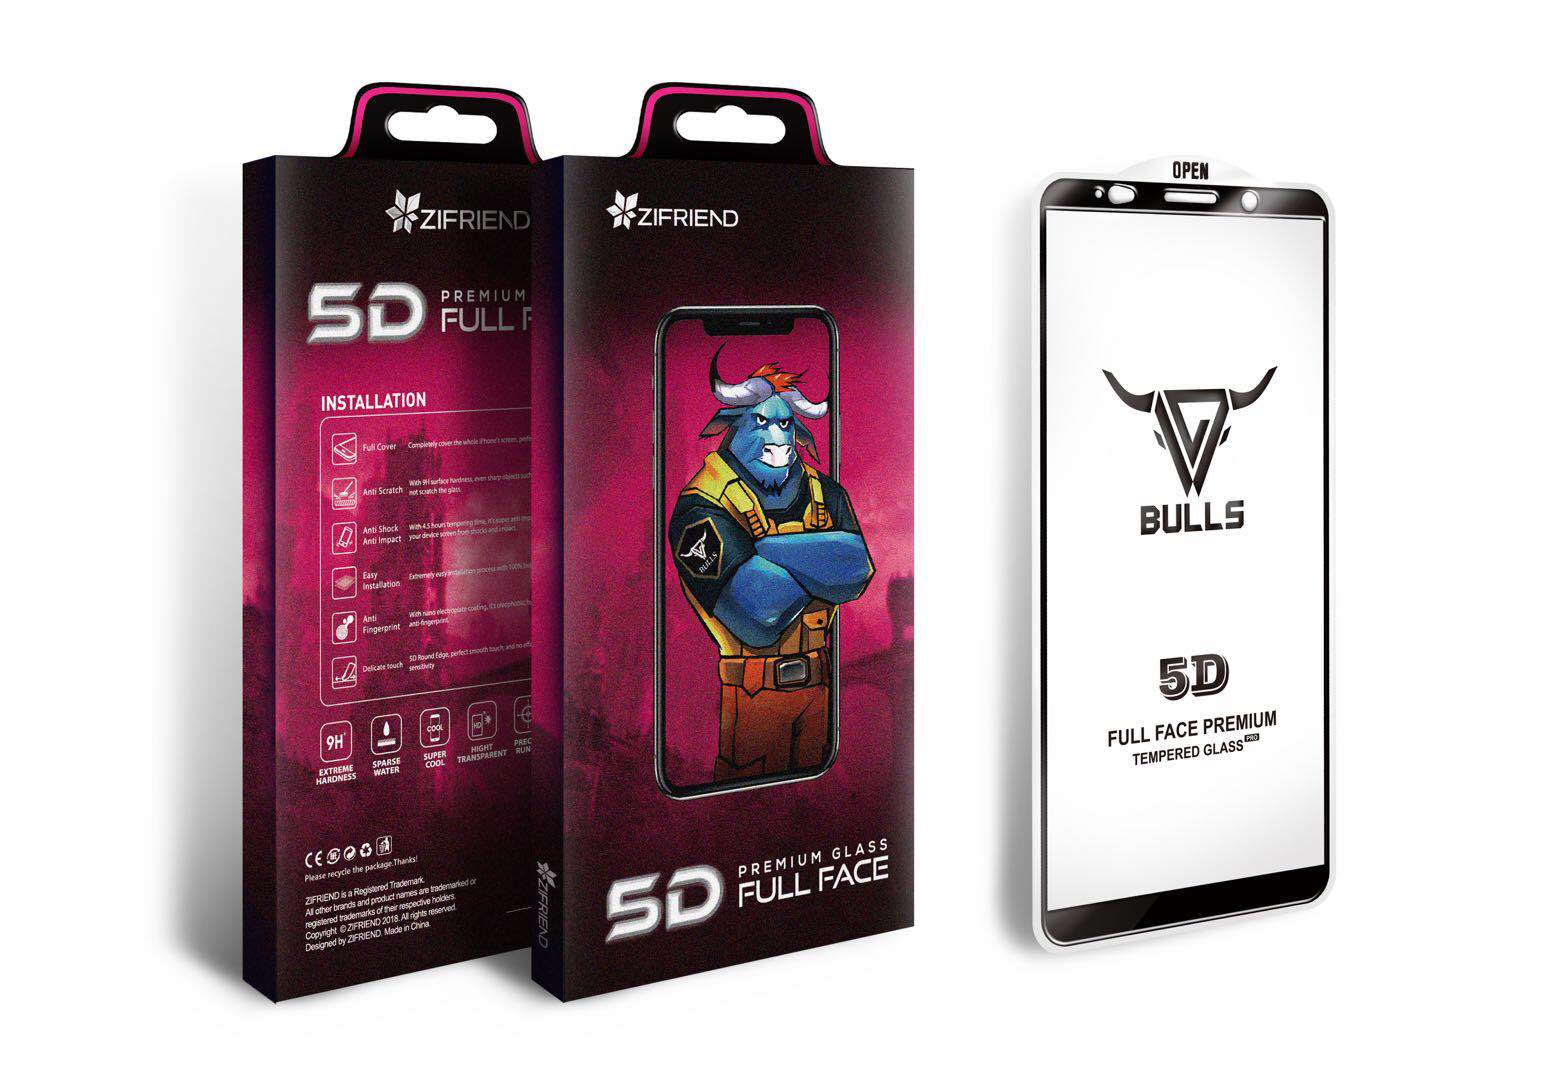 New 5D packaging.jpg